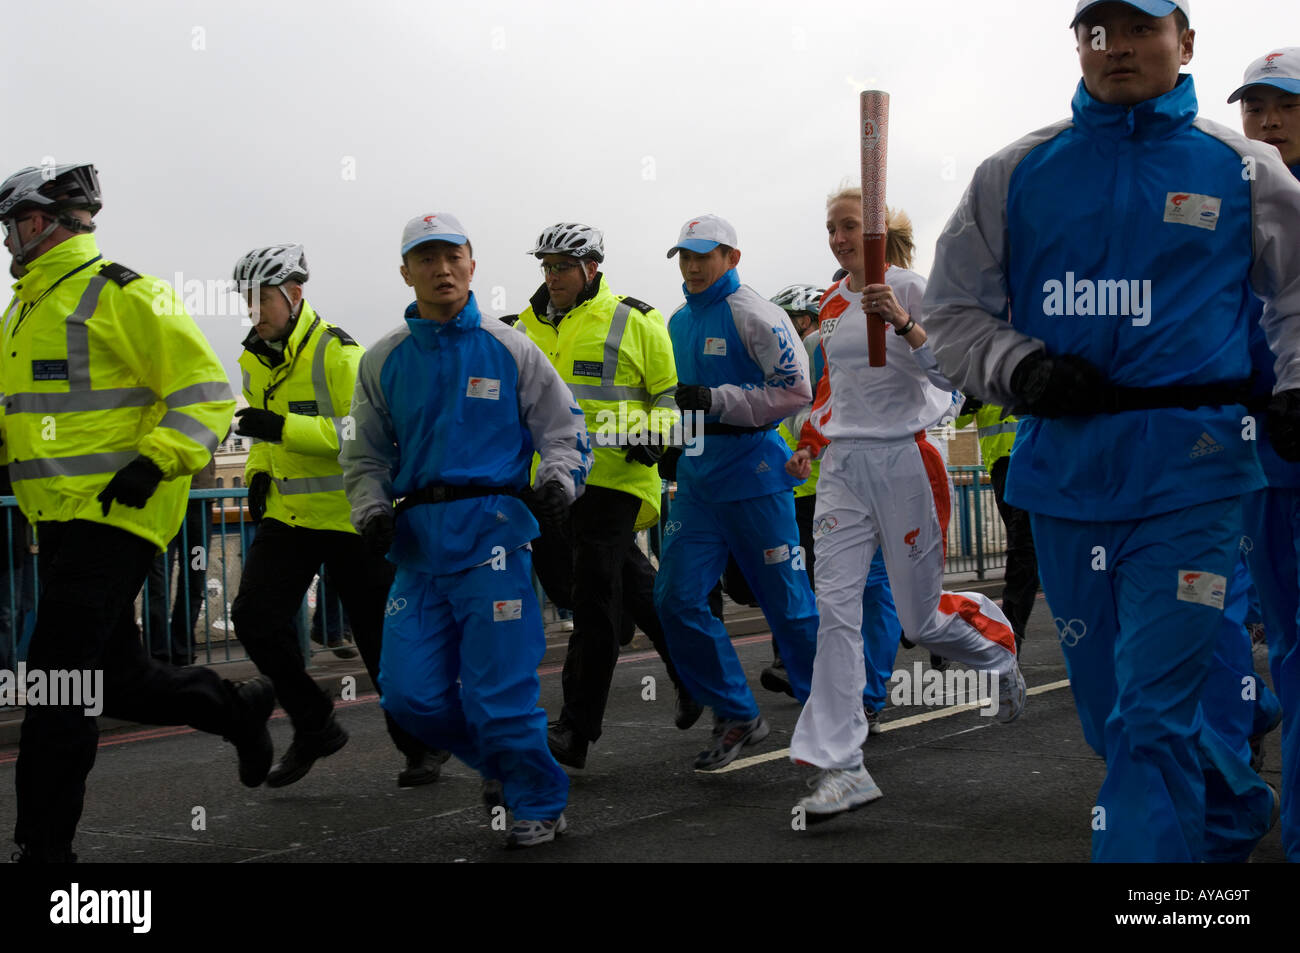 Paula Radcliffe with Olympic Torch on Tower Bridge during relay through London.  Chinese security and British Police. Stock Photo